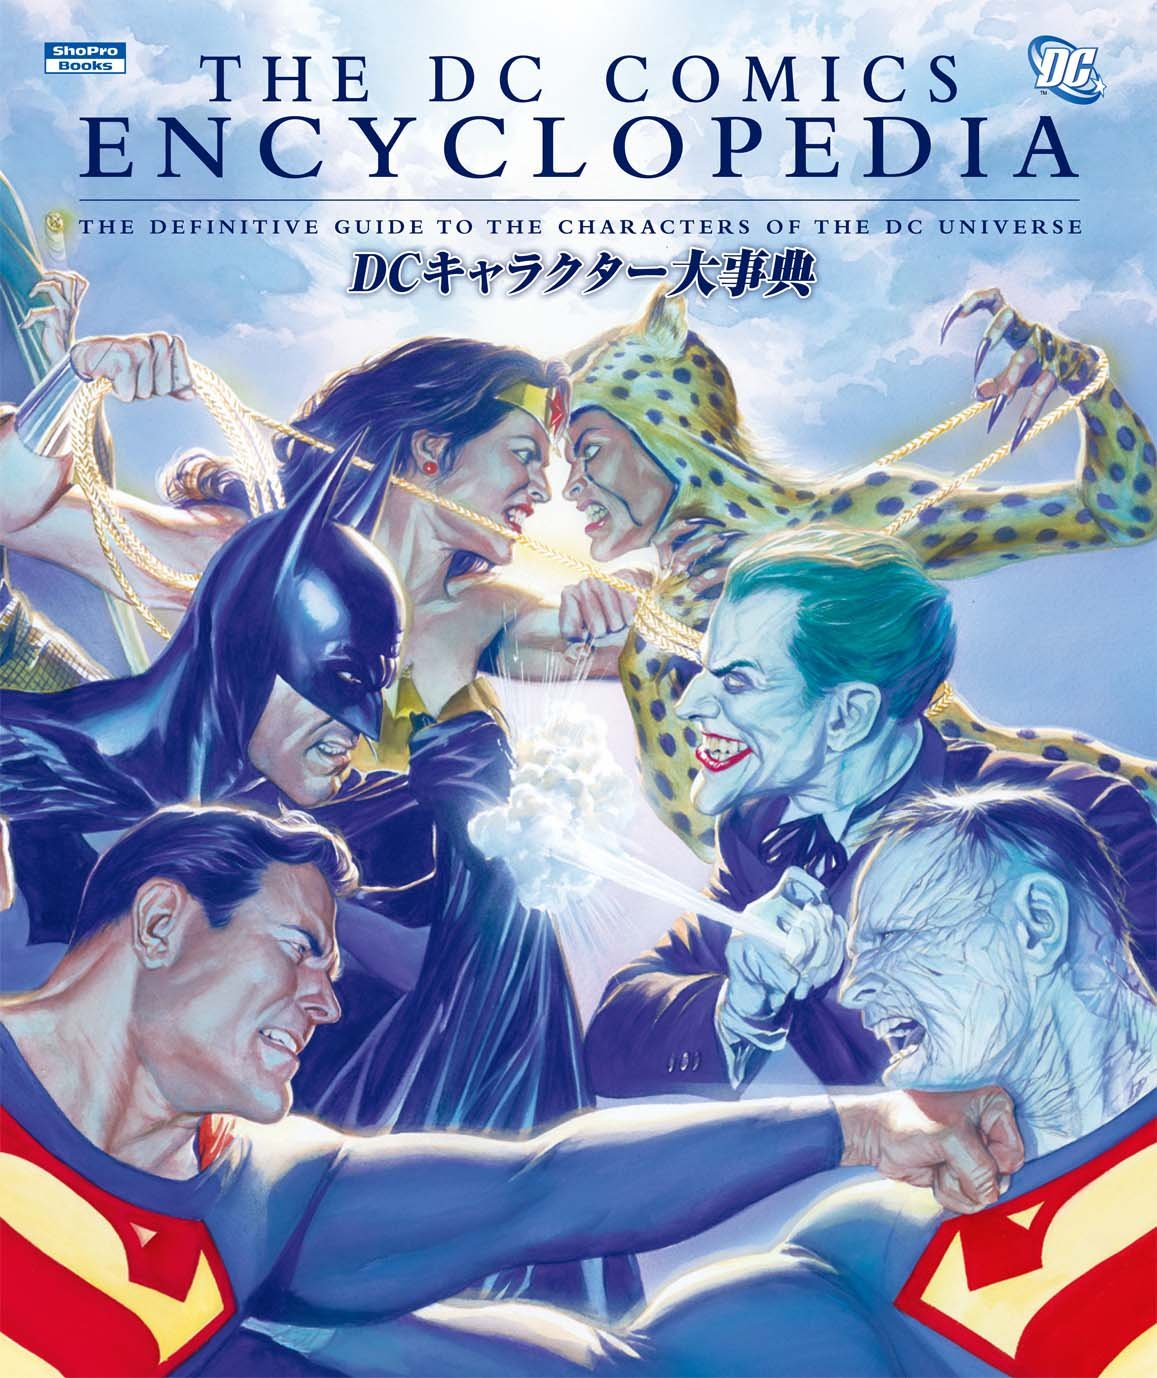 The Dc Encyclopedia dcキャラクター大事典 Shopro Books